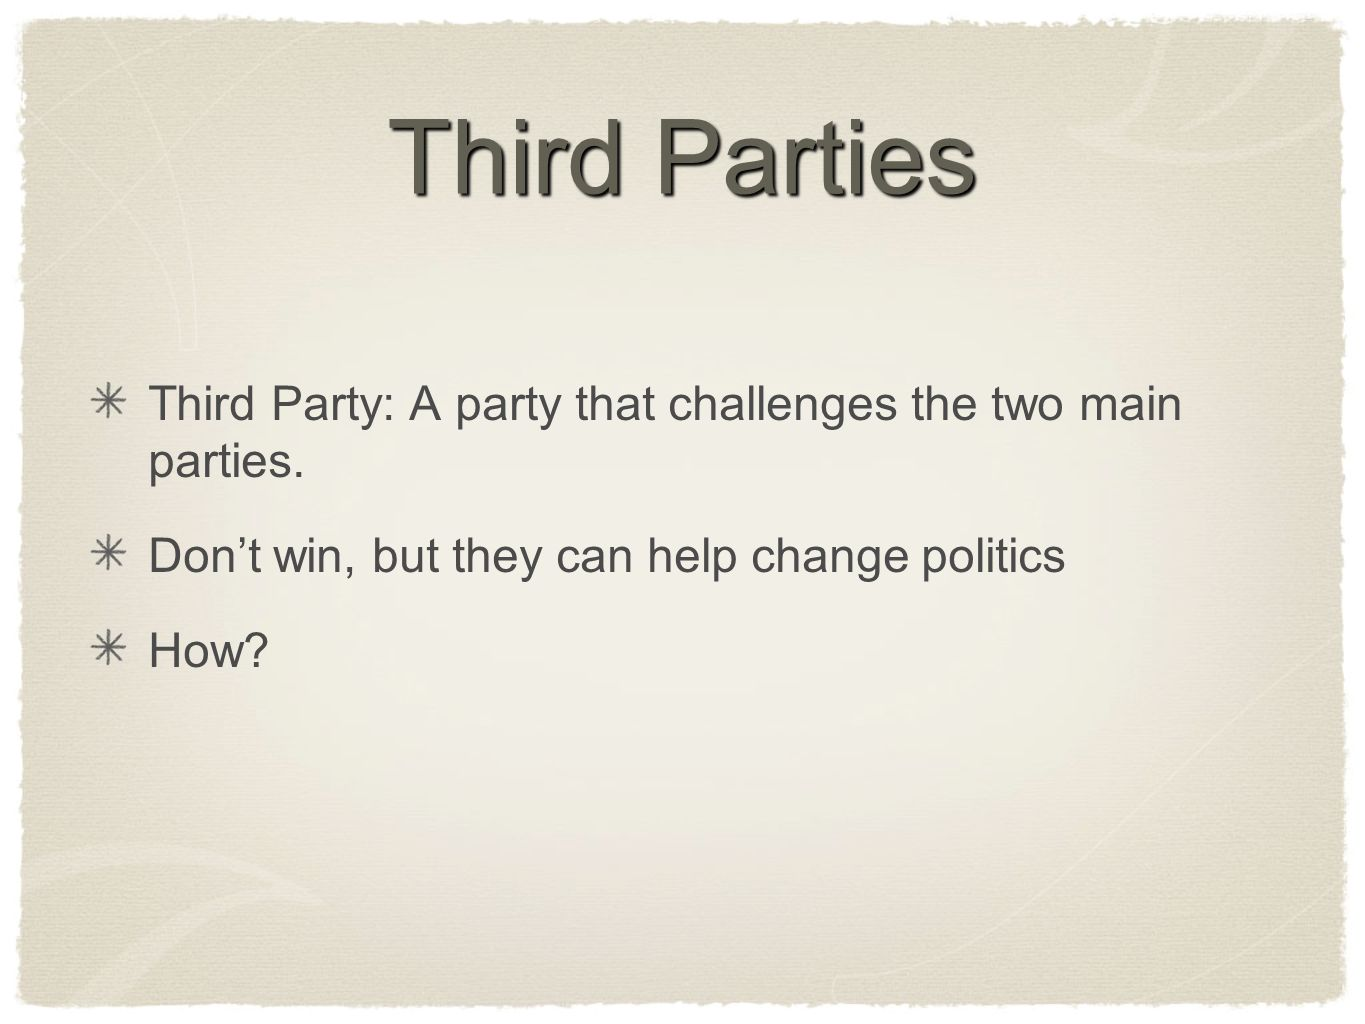 Third Parties Third Party: A party that challenges the two main parties. Don't win, but they can help change politics.